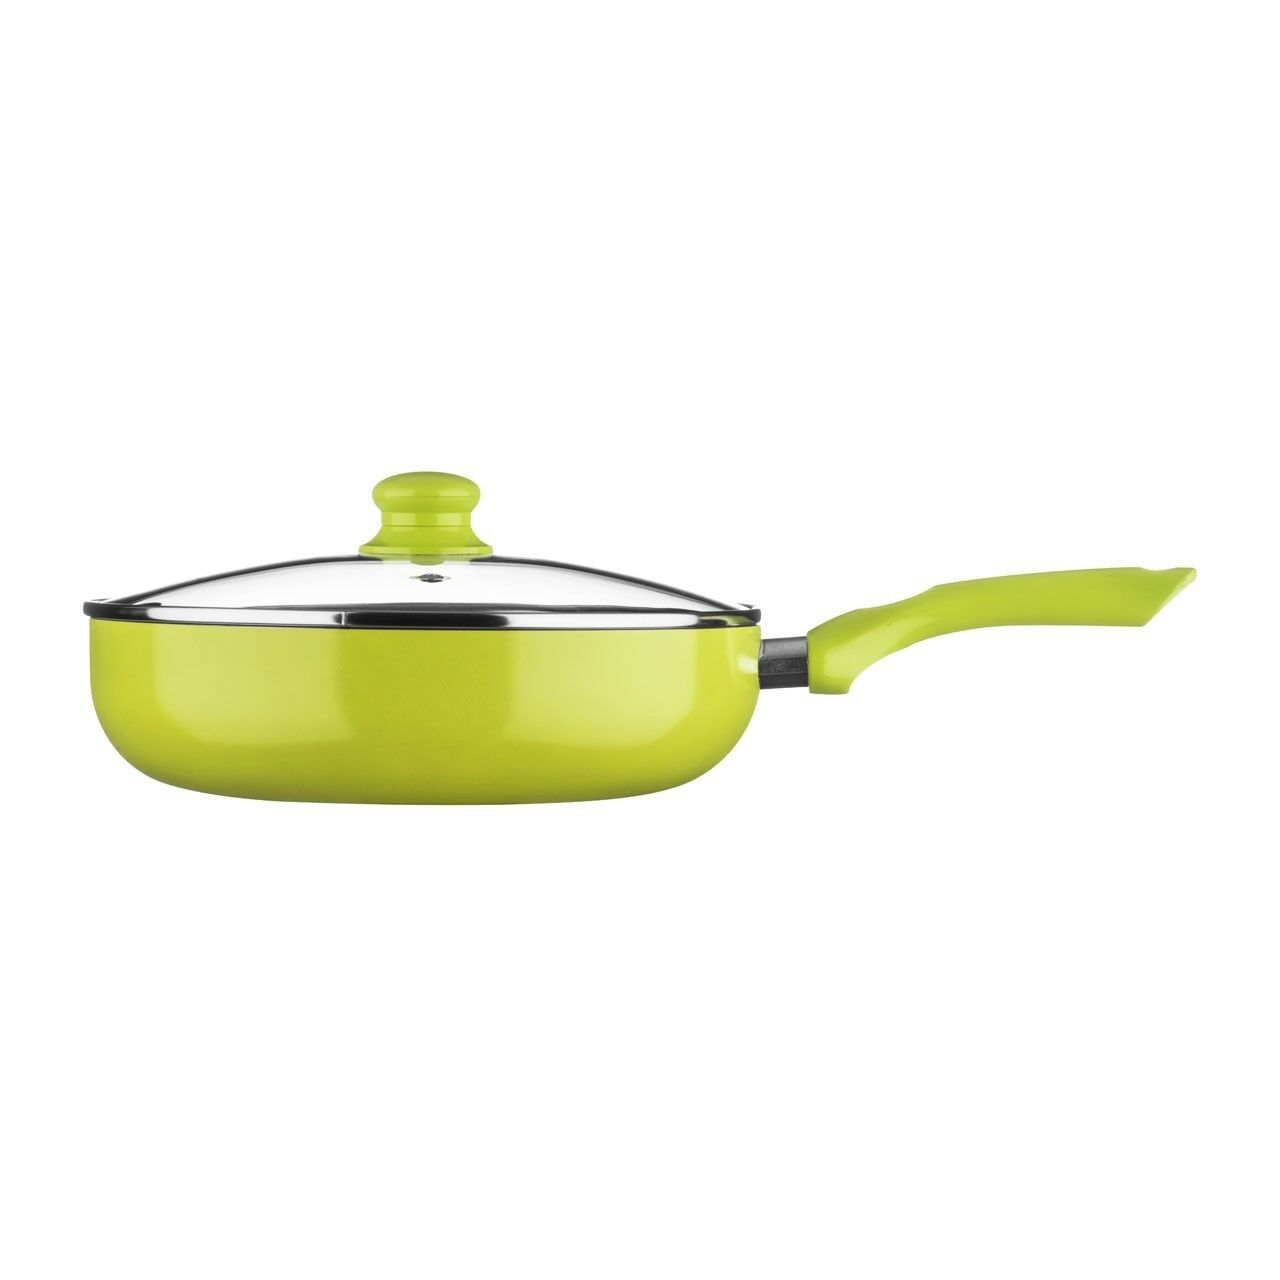 Ecocook Frypan 28cm Lime Green  White Ceramic Coating With Glass Lid